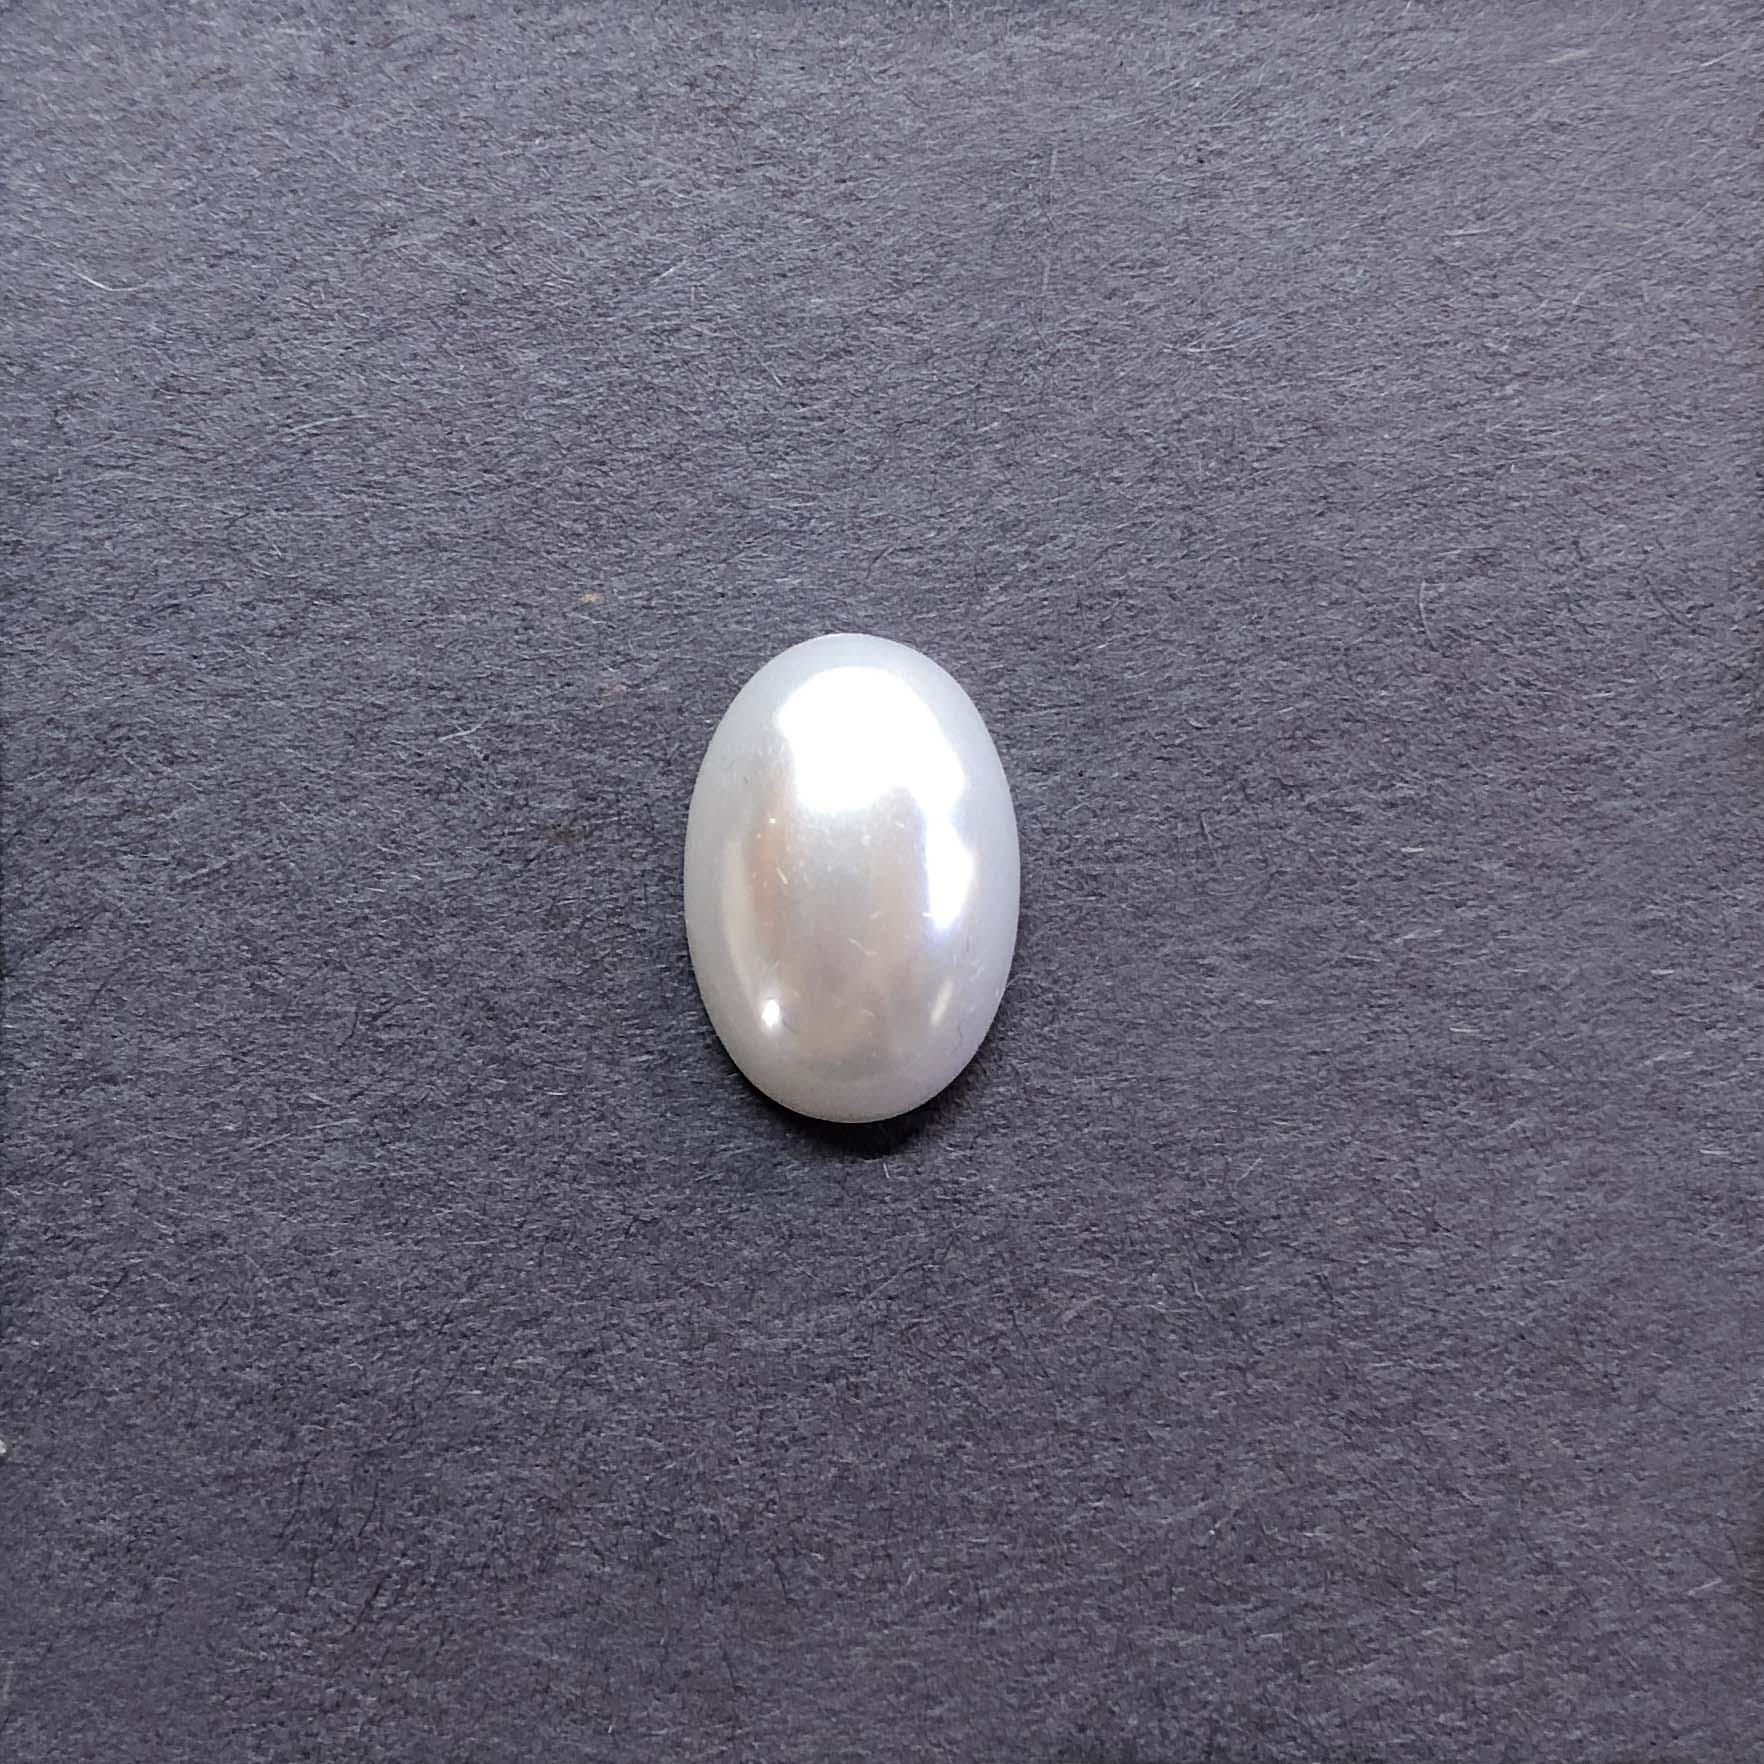 cameo, cabochon, plastic, imitation pearl, 14x10mm, 09771, jewelry making, vintage jewelry supplies, B'sue Boutiques, nickel free, US made, cameo jewelry, white cameos, pearl cabochons